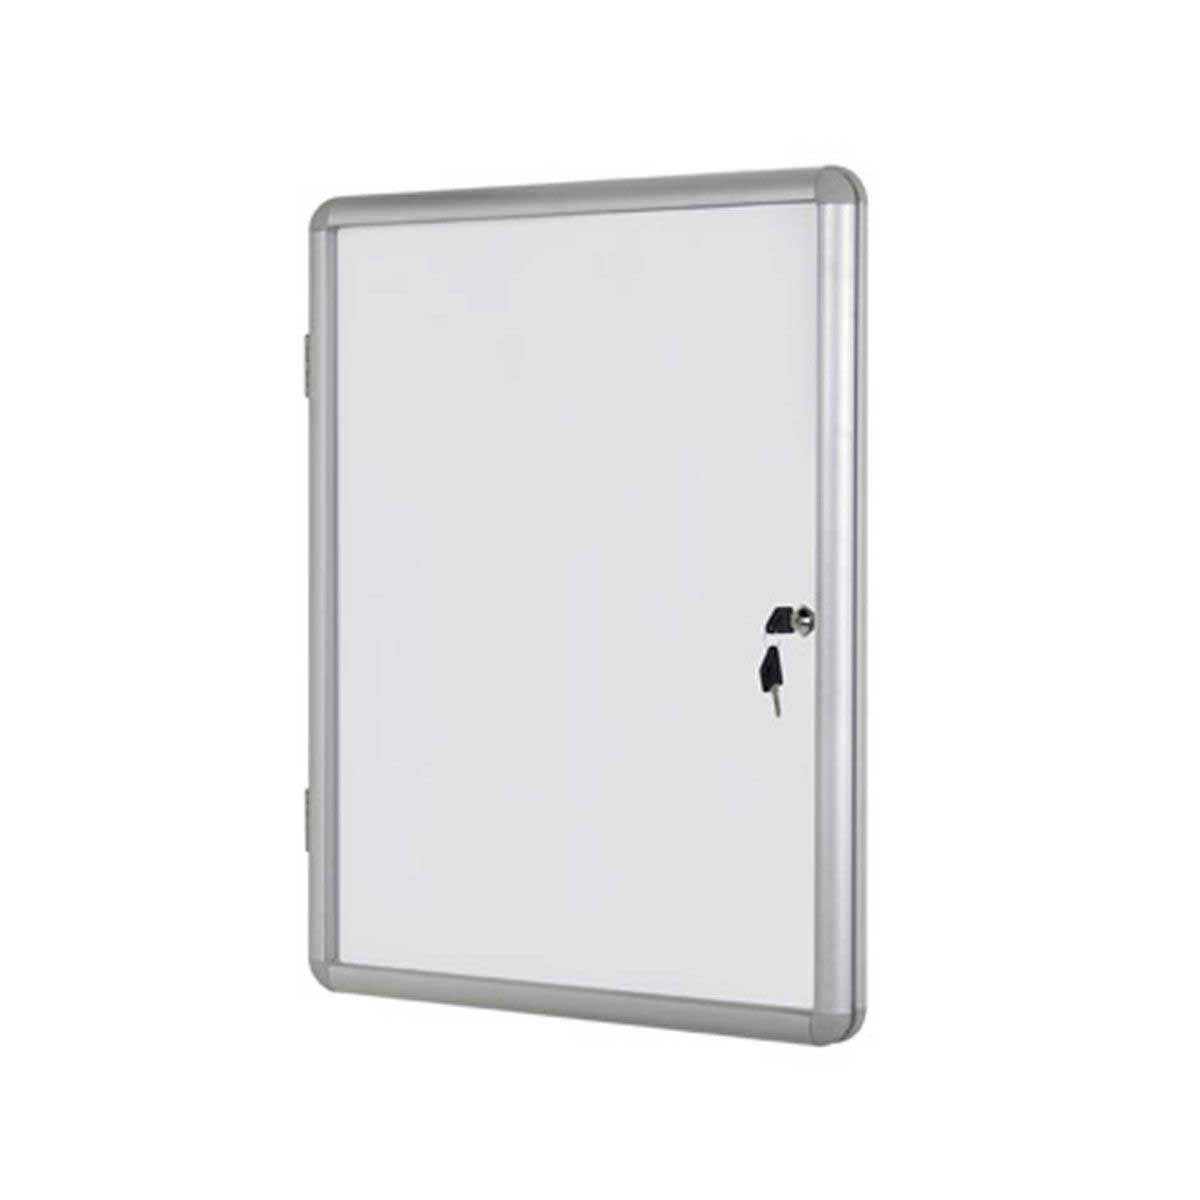 bi-office display case magnetic backed lockable 1200x900mm